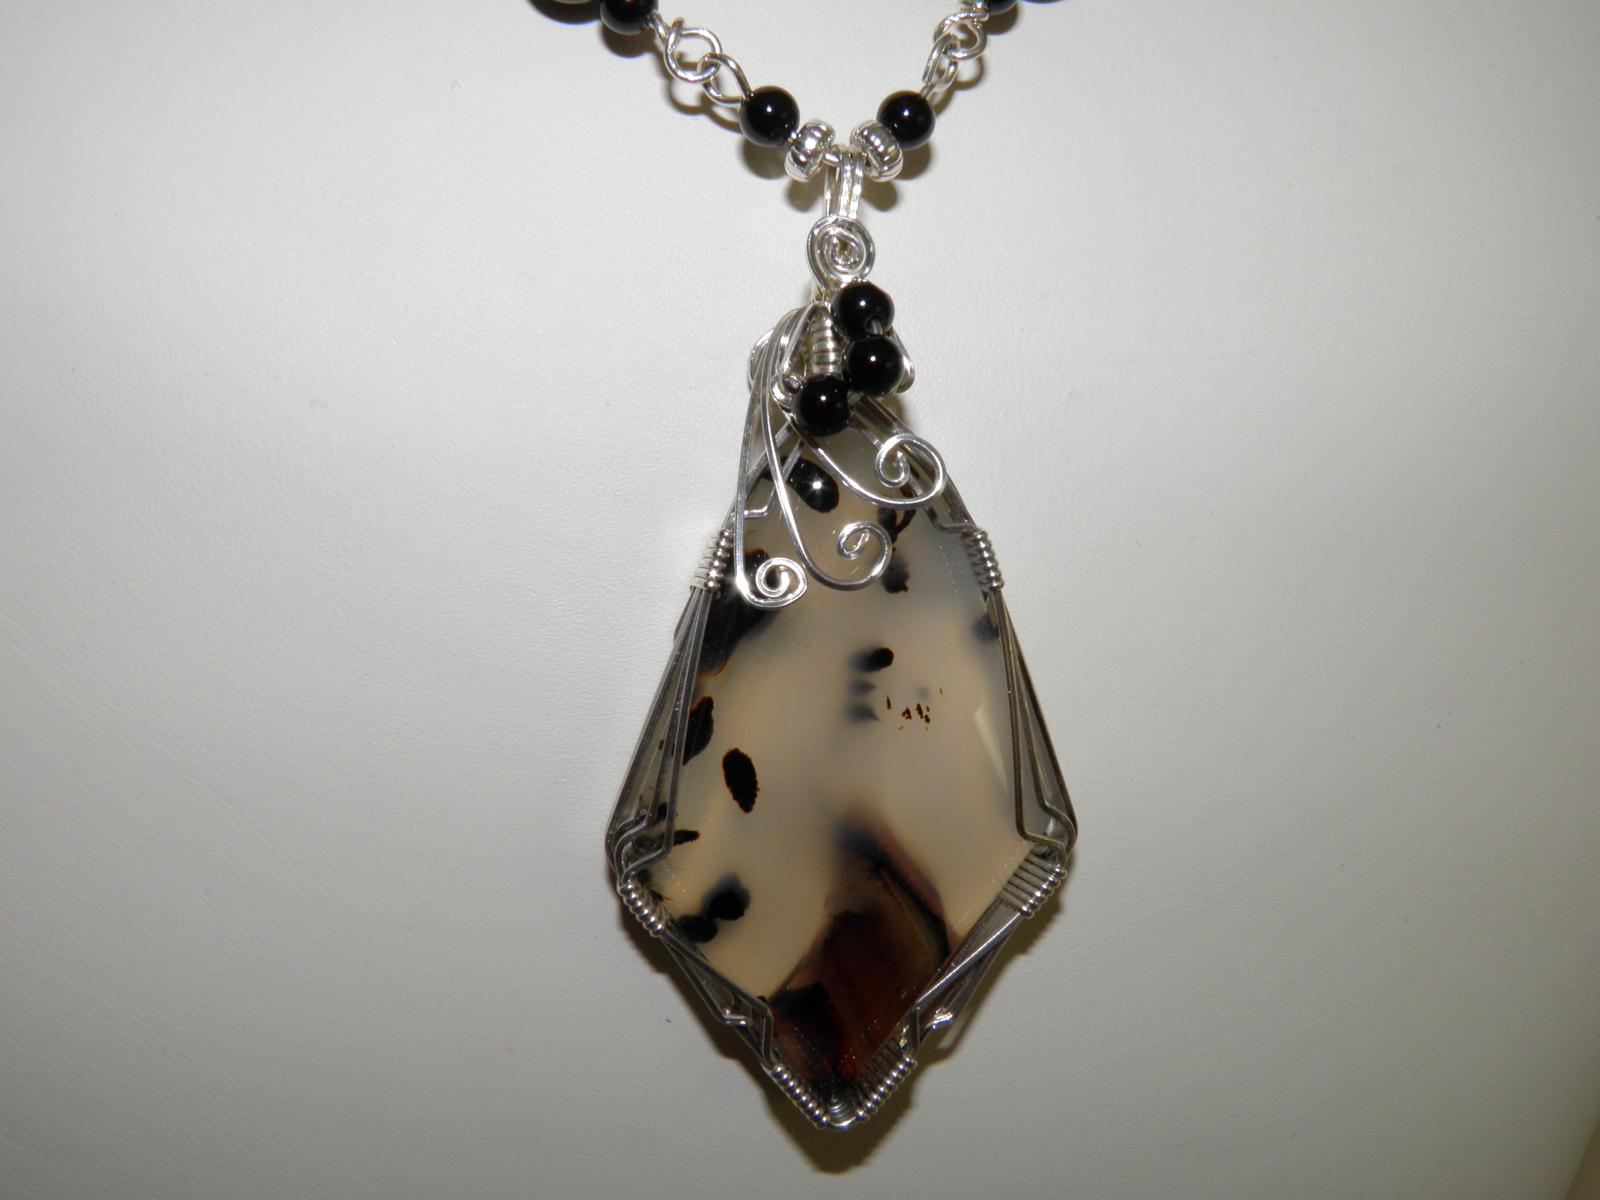 moss agate petite and collectionobsidian product obsidian o agnos crystal dawn african homethe necklace